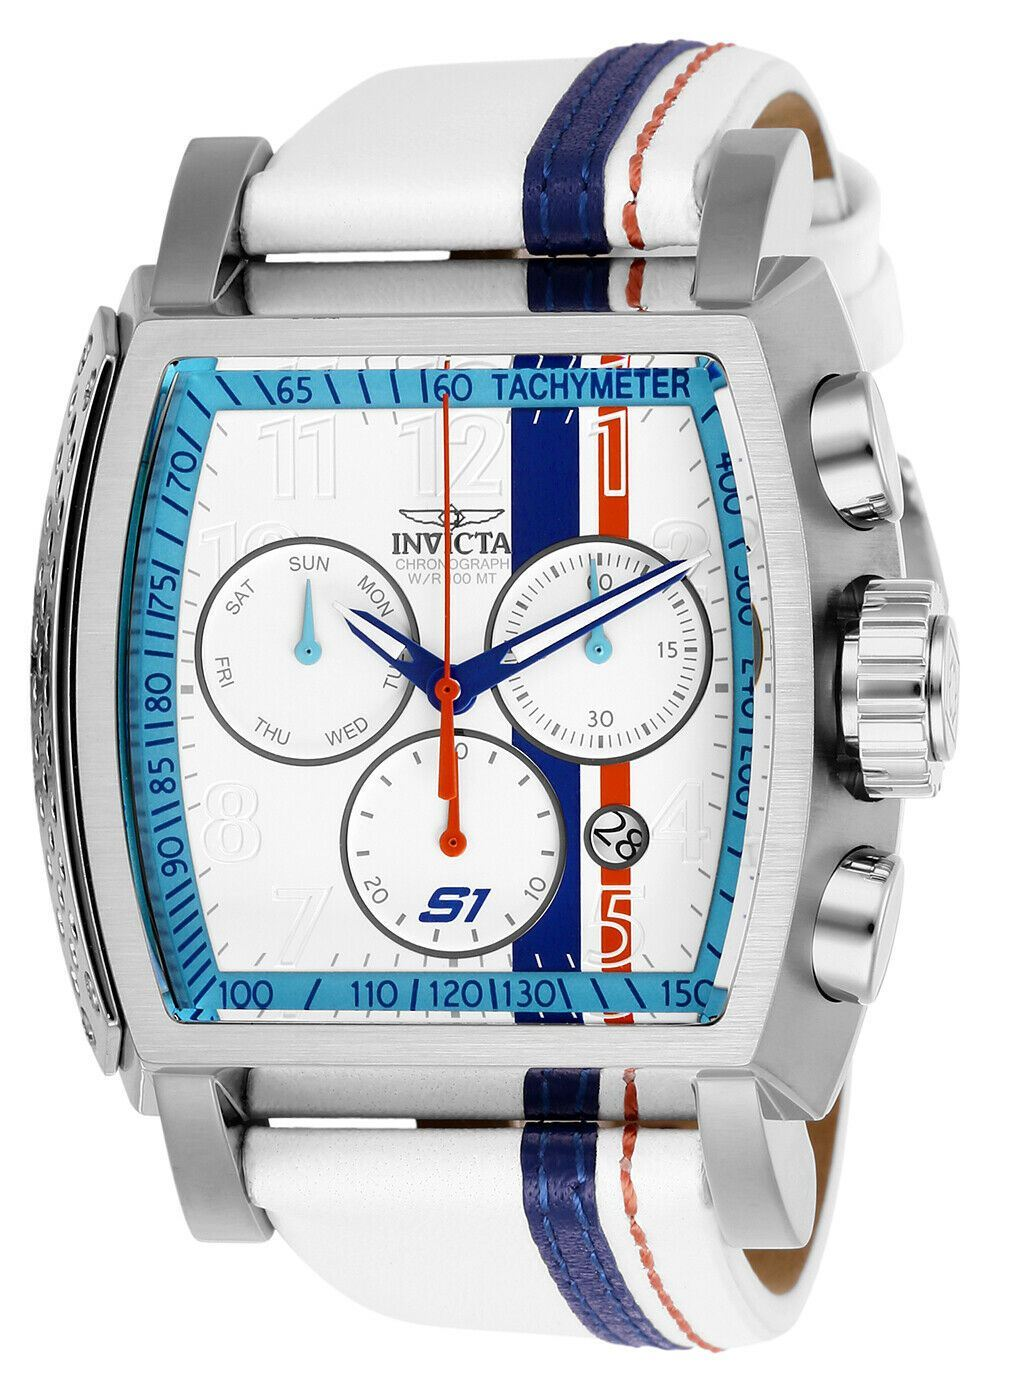 0c400d775 Details about Invicta S1 Rally Race Team 26394 White Leather Swiss  Chronograph Watch Z60